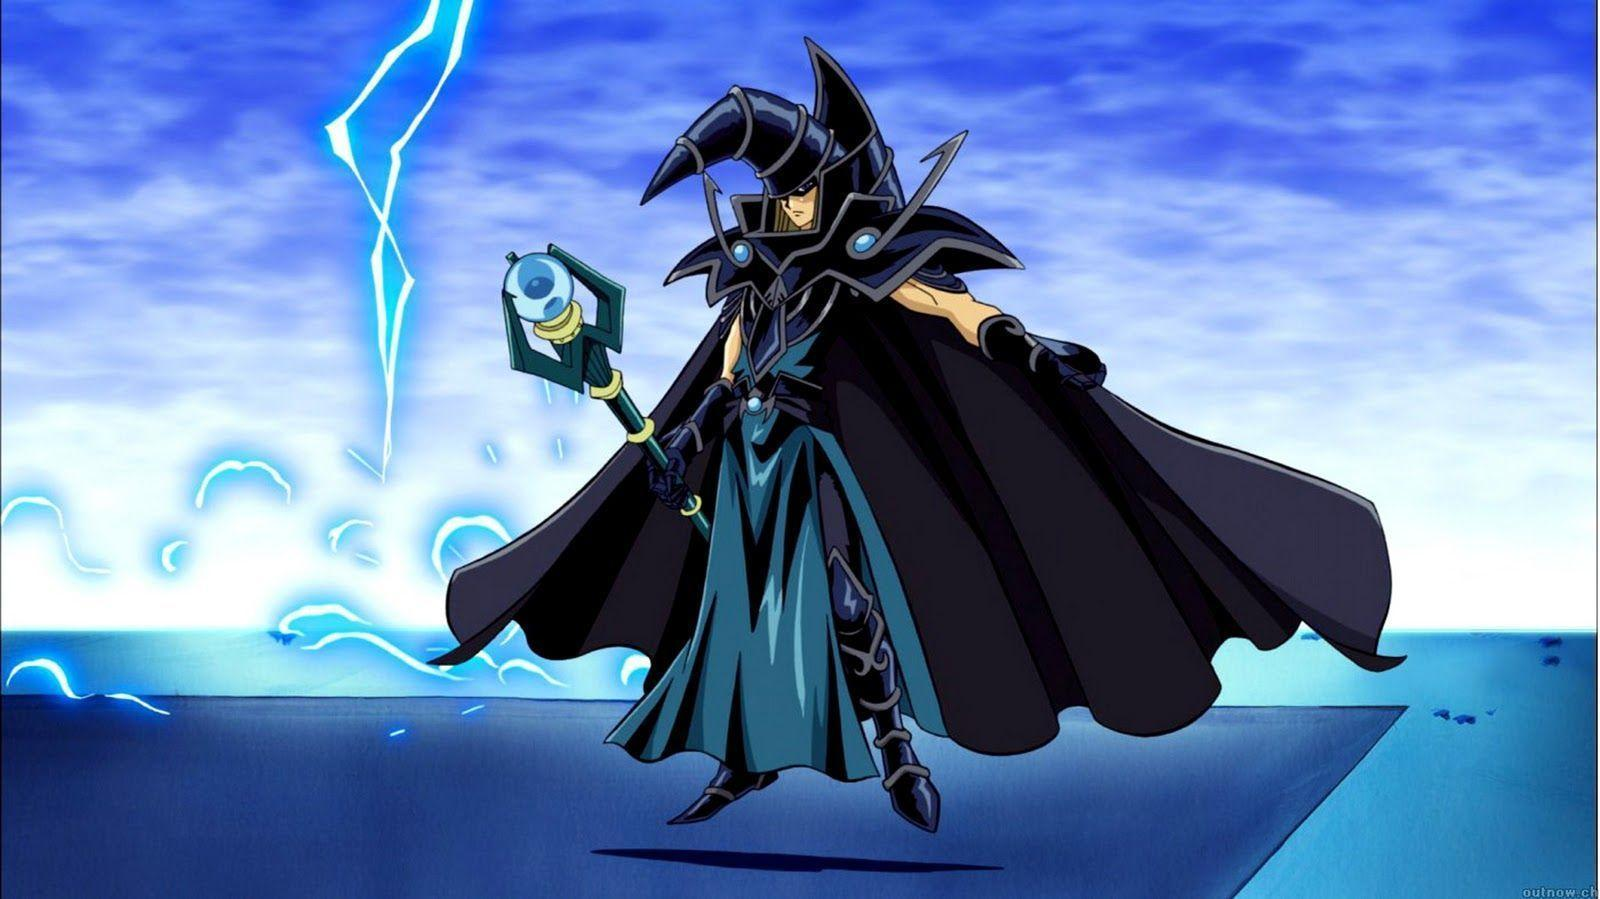 yugioh backgrounds synchro - photo #15